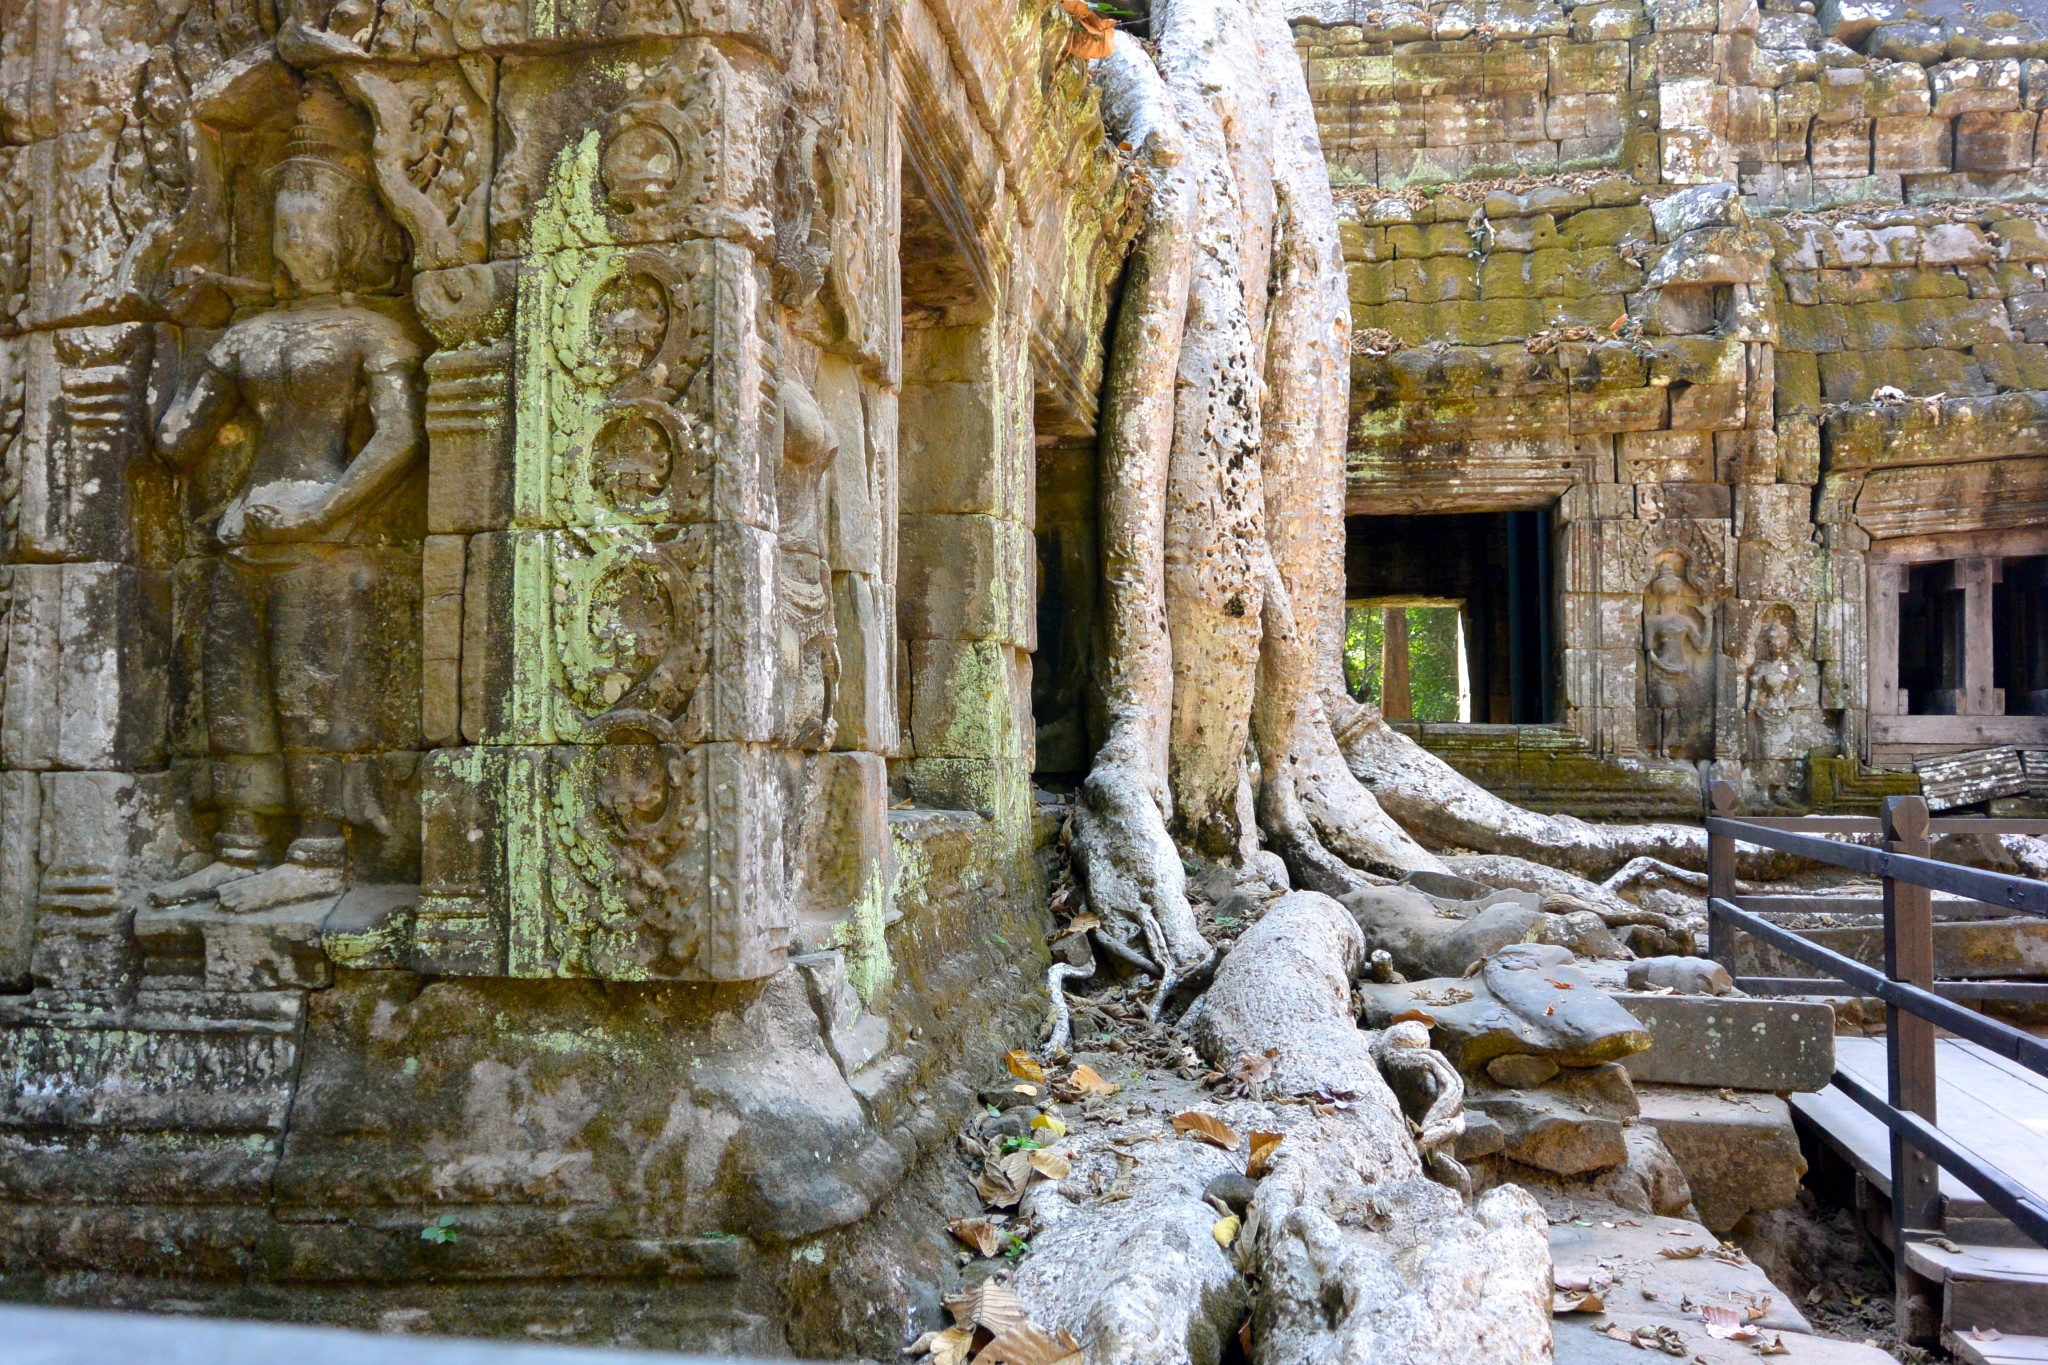 Siem Reap, Cambodia: 6 Must See Attractions